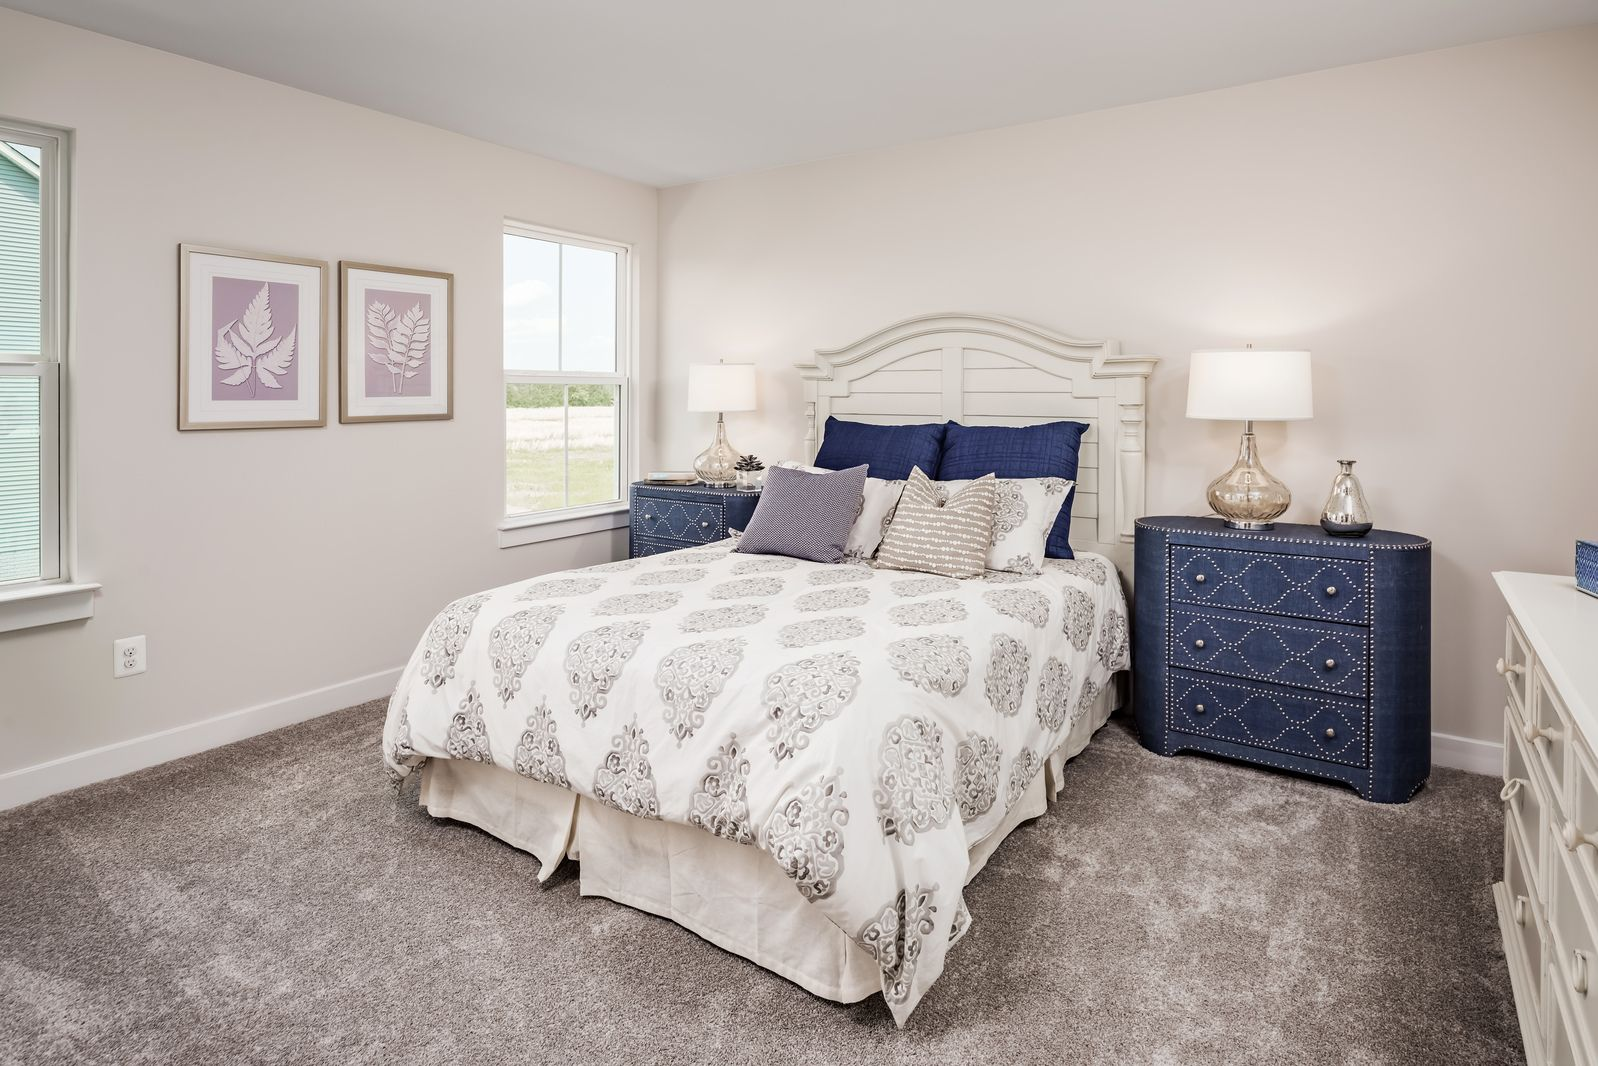 Bedroom featured in the York By Ryan Homes in Chicago, IL